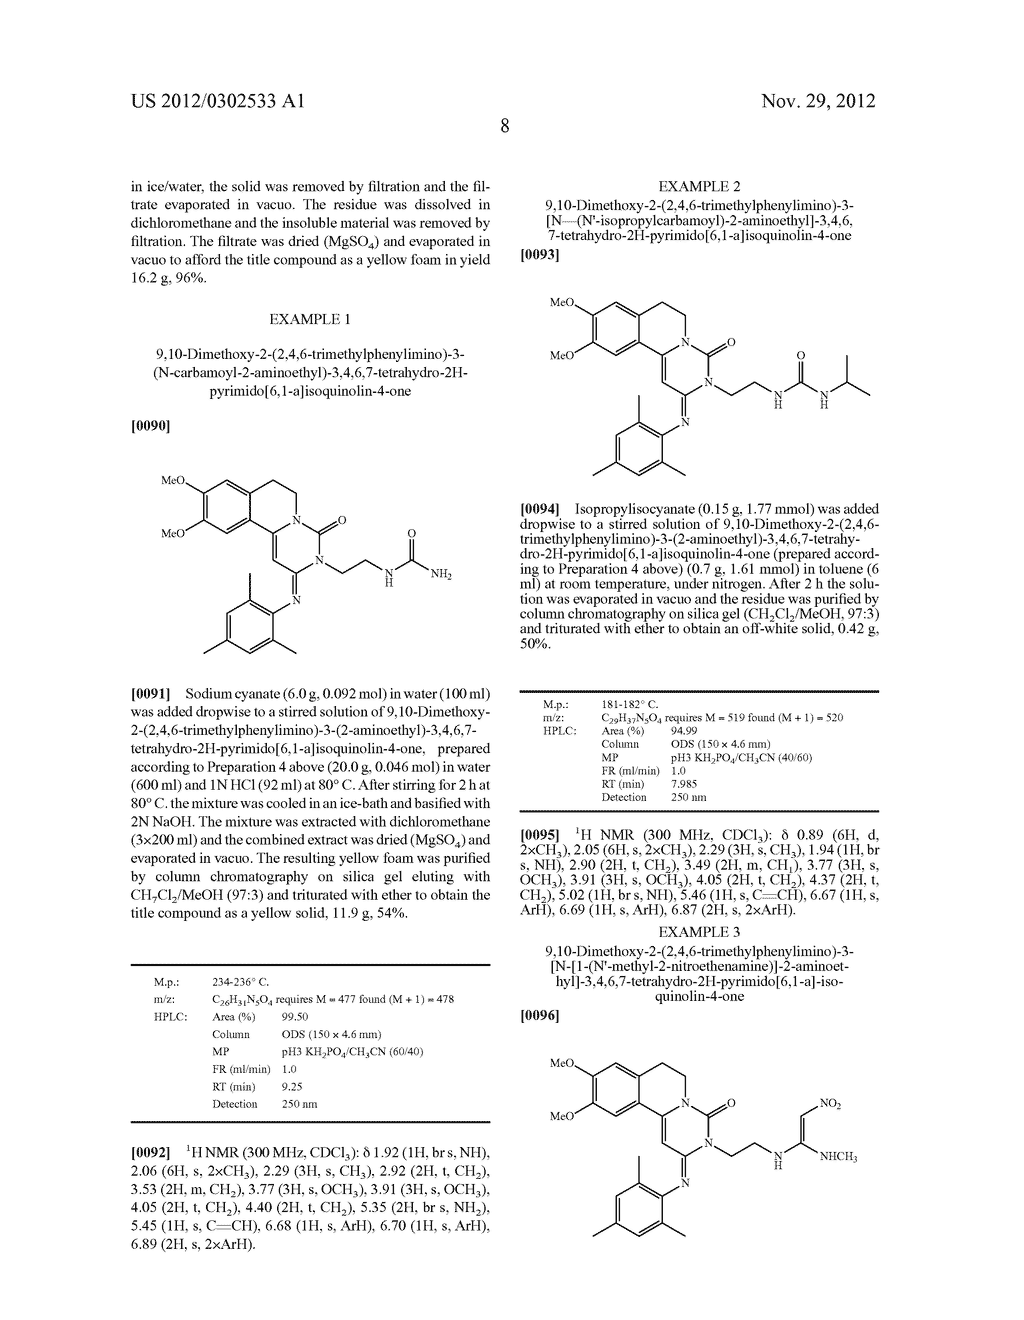 DERIVATIVES OF PYRIMIDO [6,1-A] ISOQUINOLIN-4-ONE - diagram, schematic, and image 14